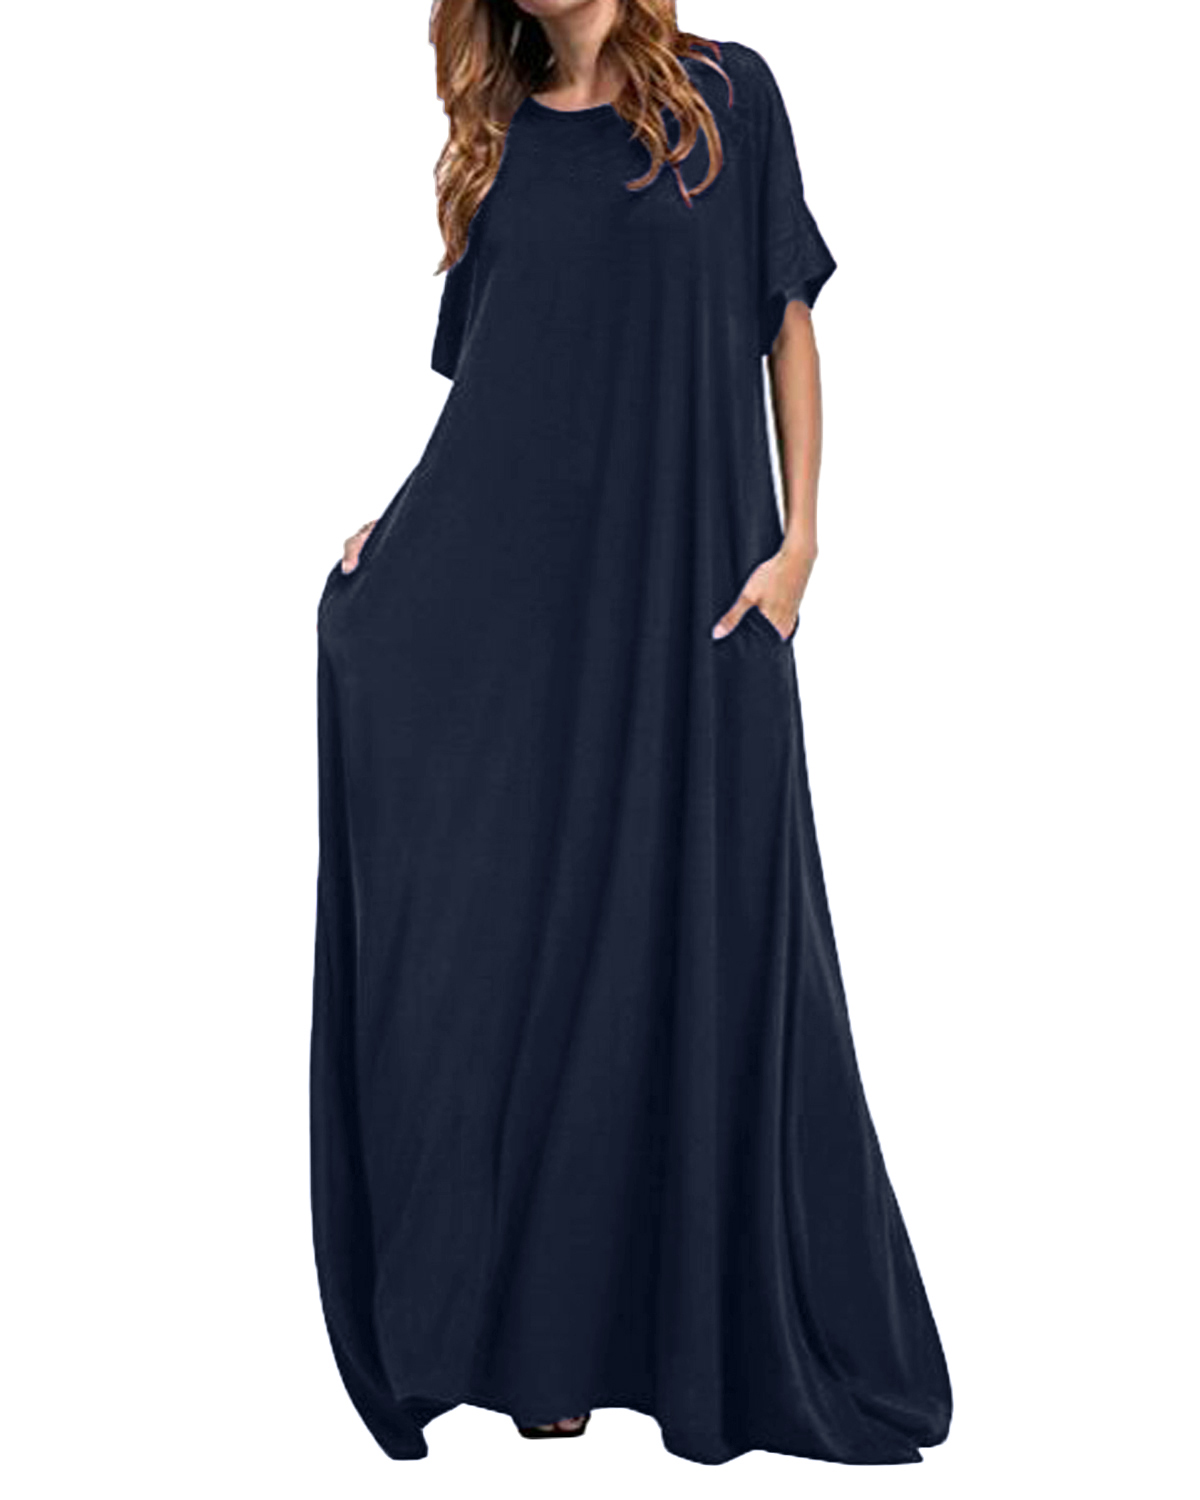 Women Half Sleeve Solid Round Neck Long Maxi Dress ZANZEA 2019 Casual Loose Long Elegant Robe Bodycon Dresses Vestidos Plus Size